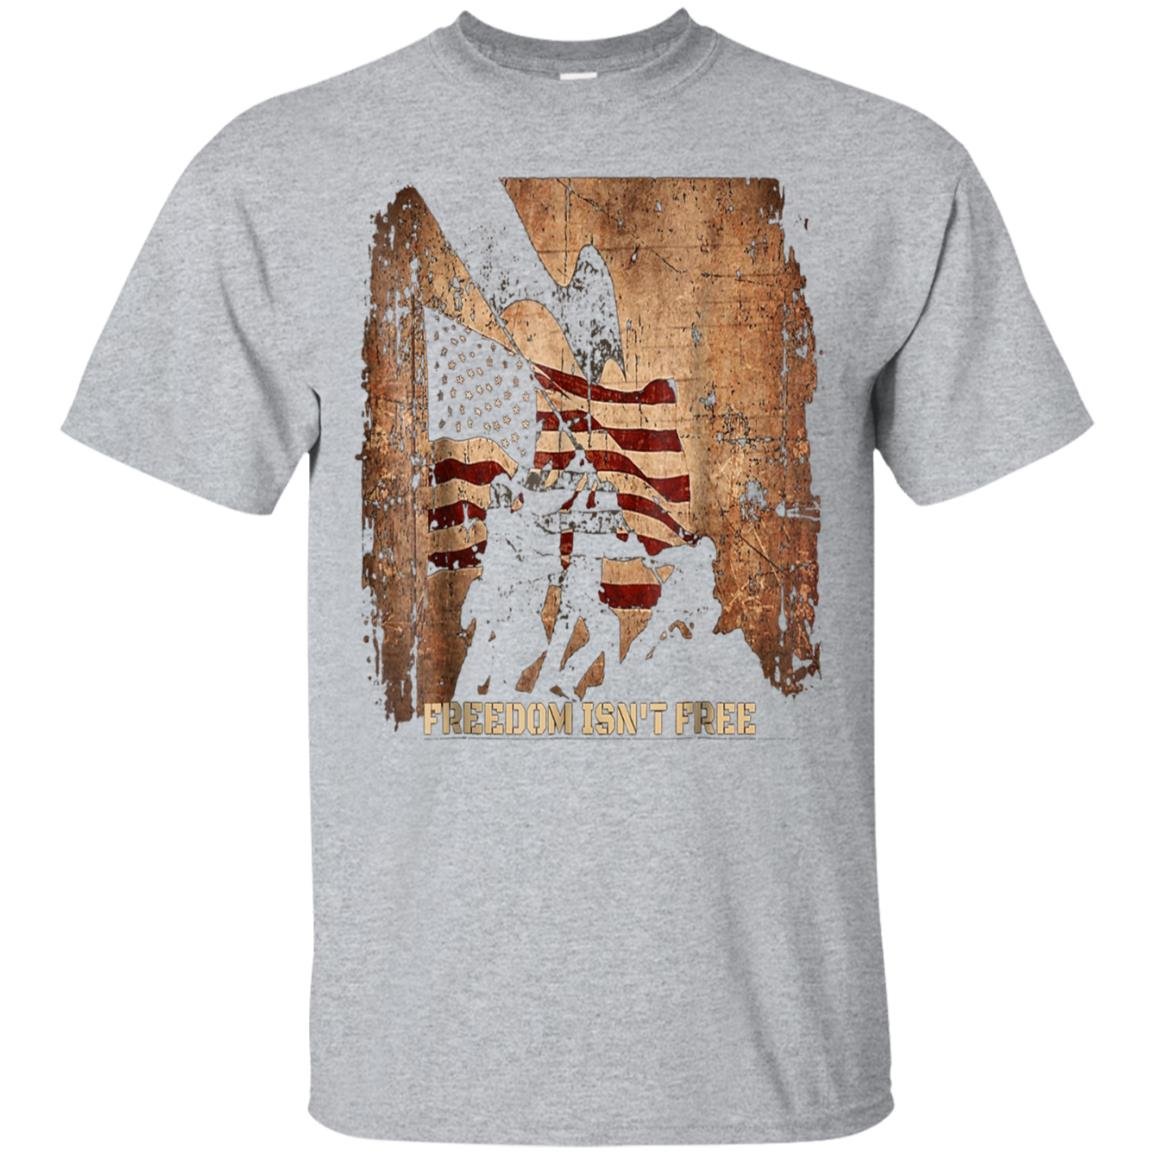 USA Flag Veterans Day Freedom Isn't Free Tshirt 99promocode